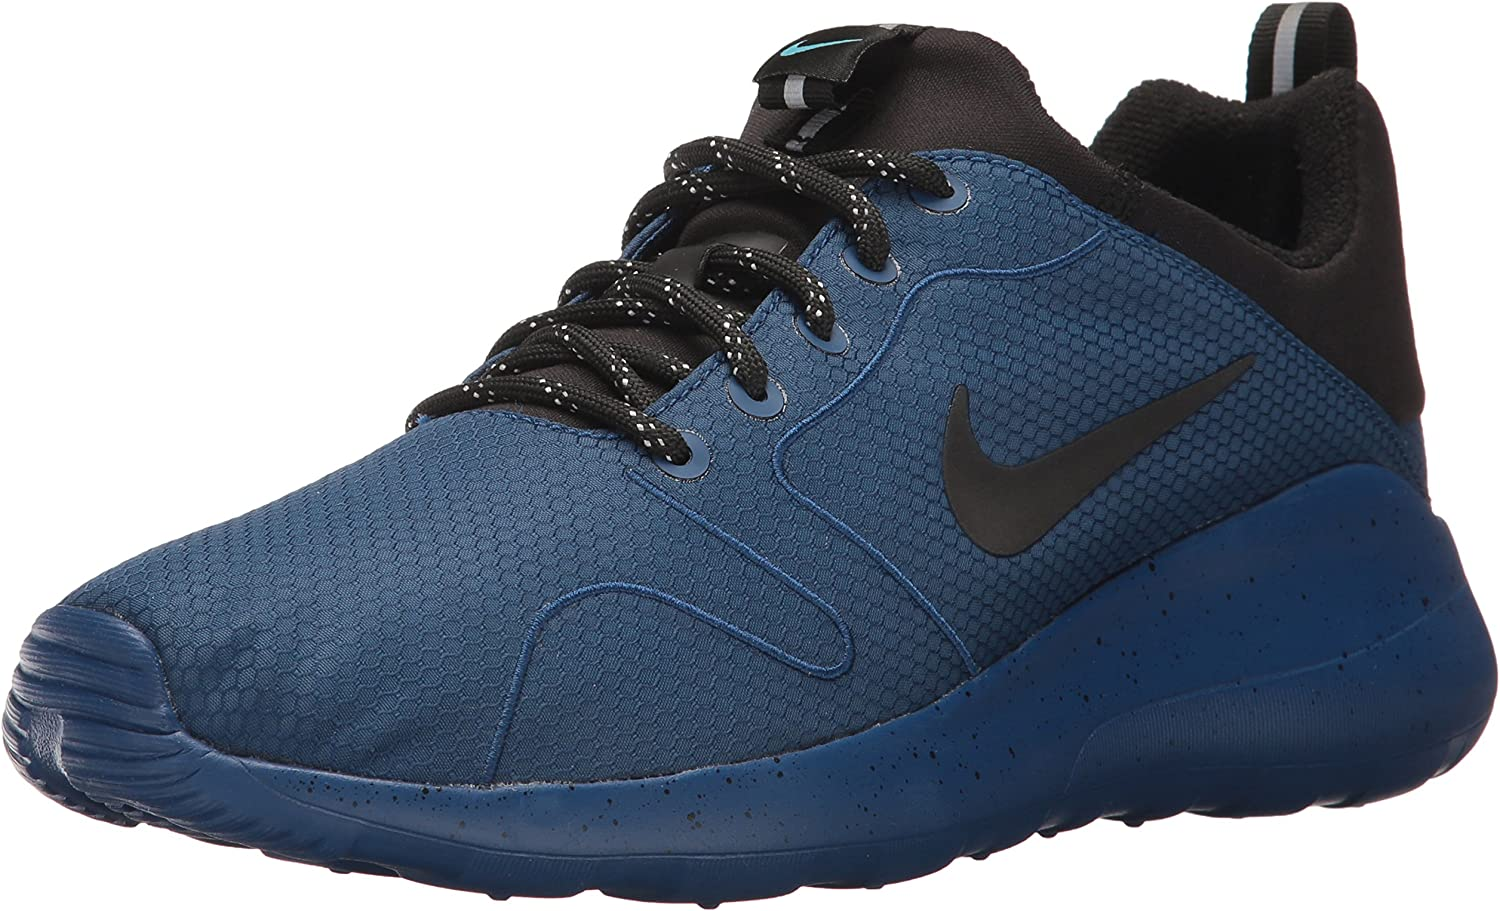 Nike 844838-400 Men s Kaishi 2.0 SE Running Shoes, Coastal Blue Black Omega Blue, 8.5 M US